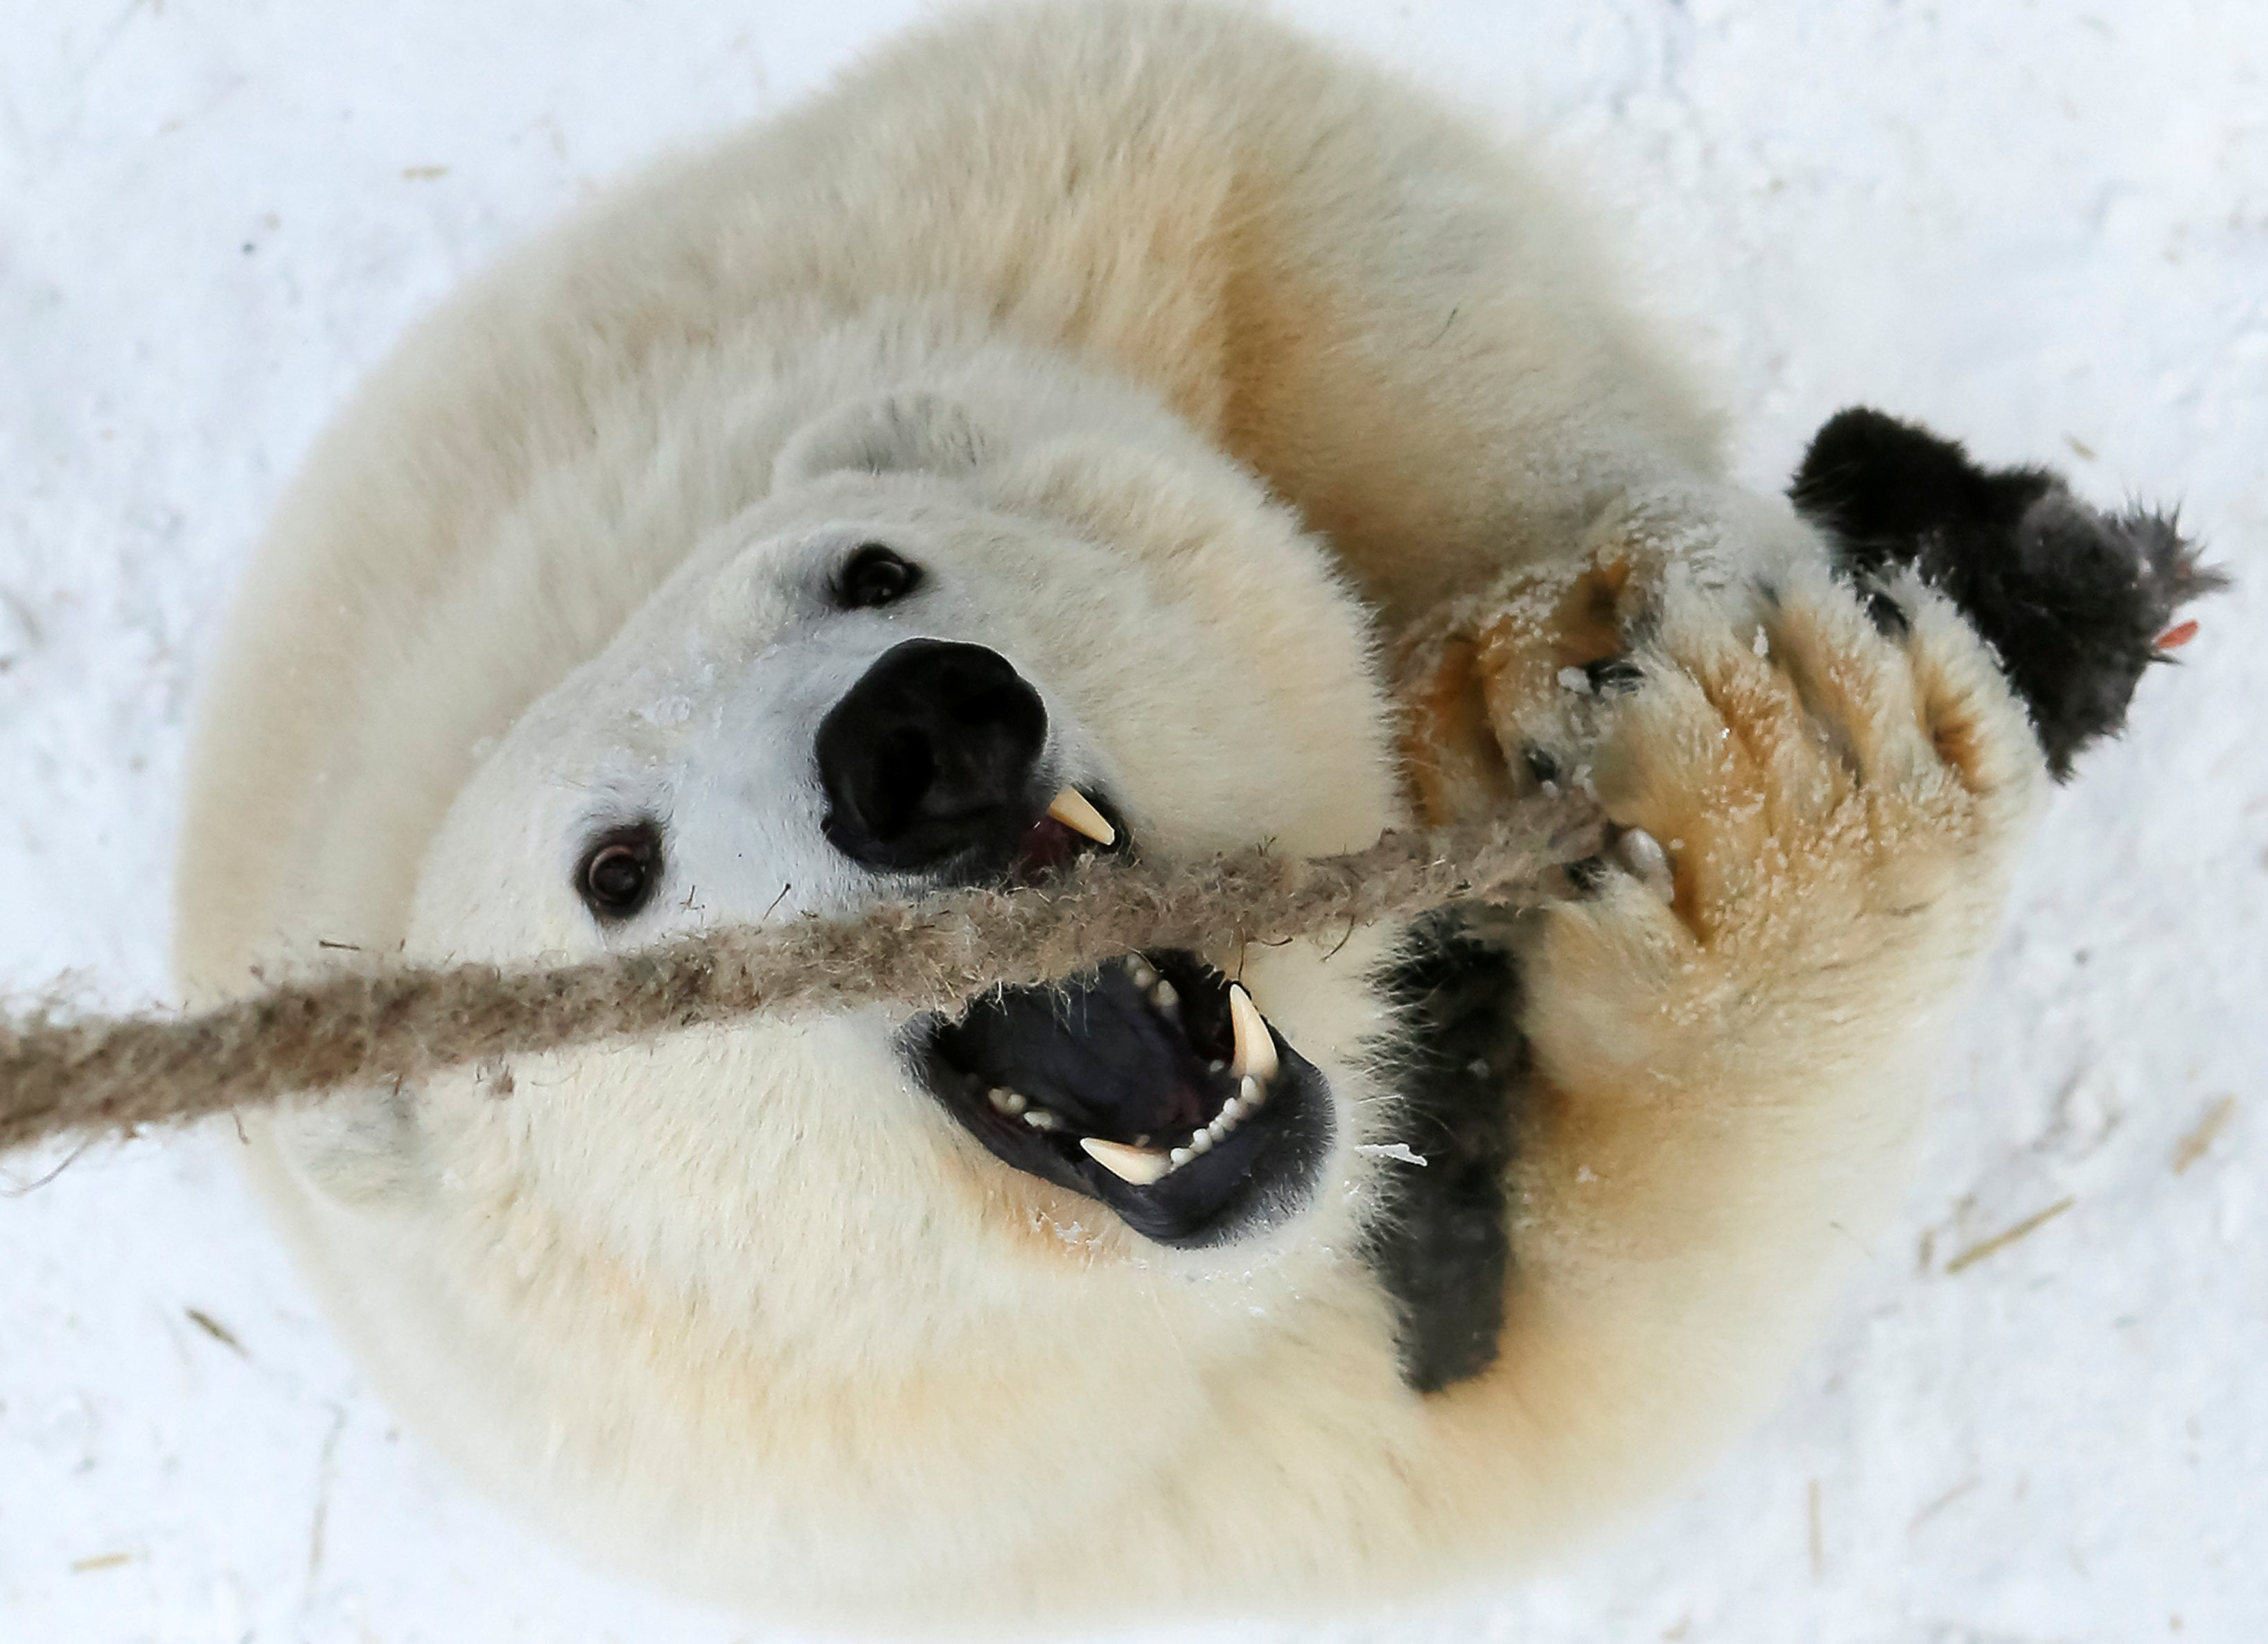 polar bear chewing on a rope, also looking terrifying